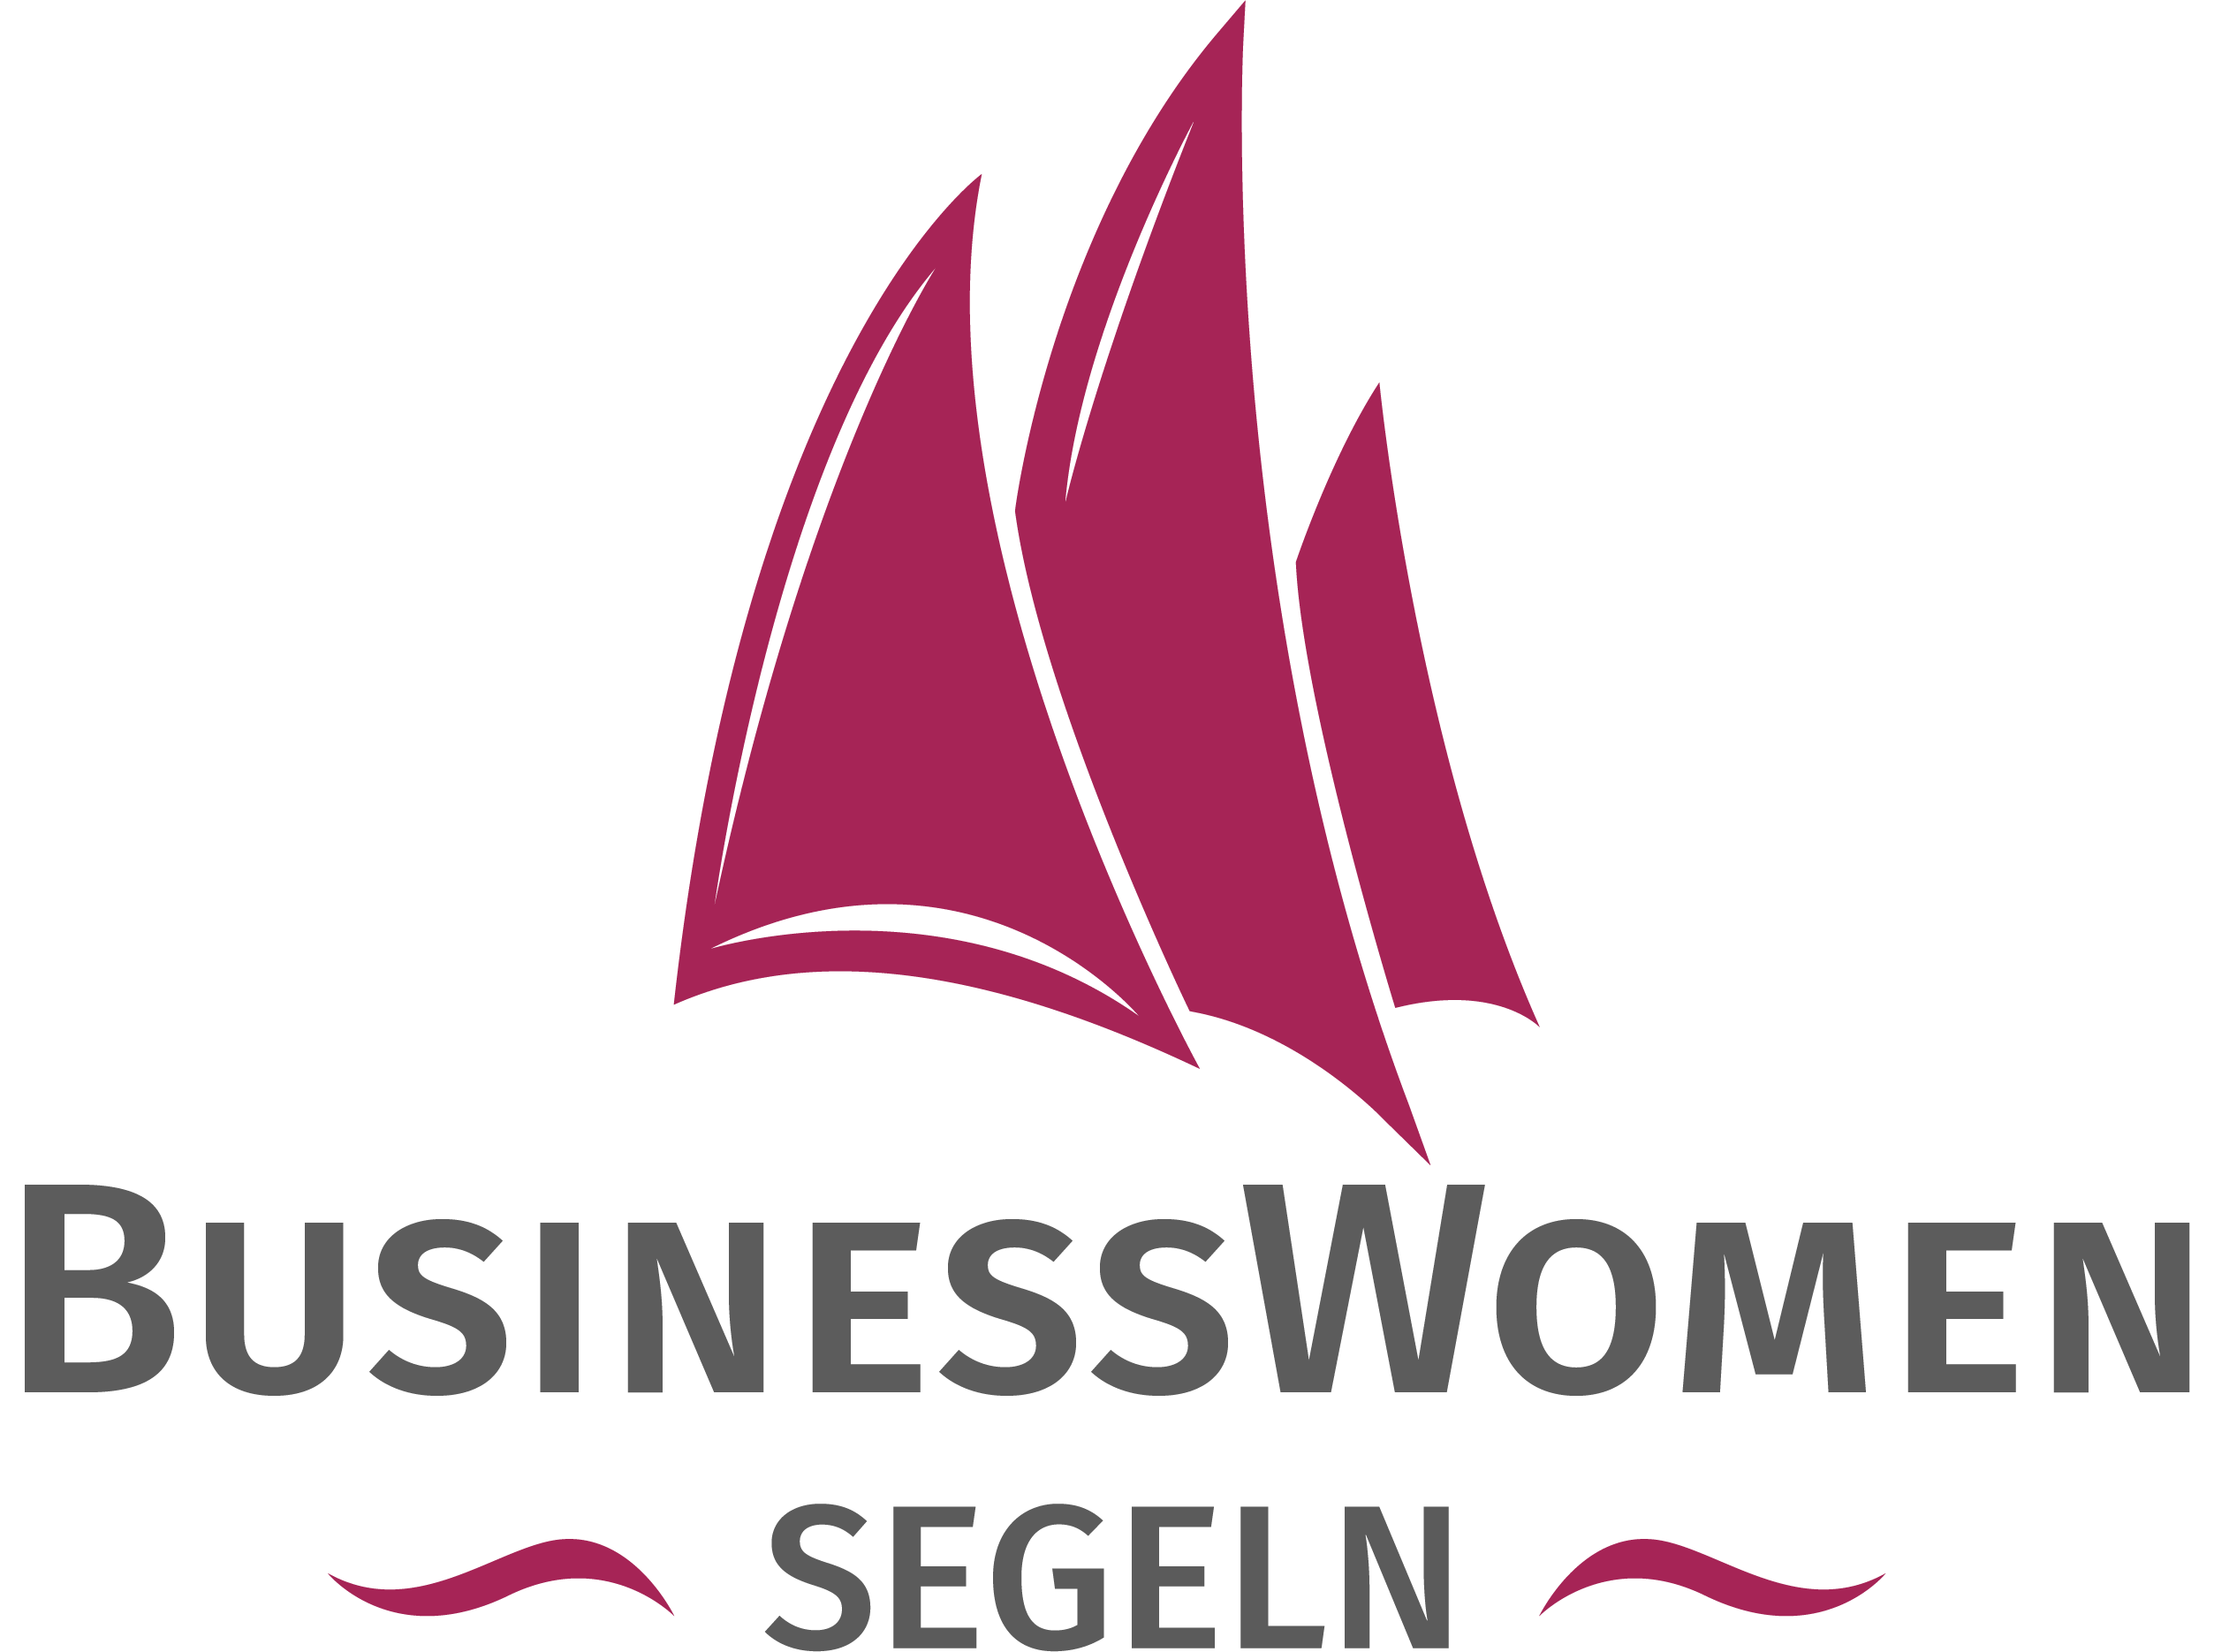 BusinessWomen Segeln